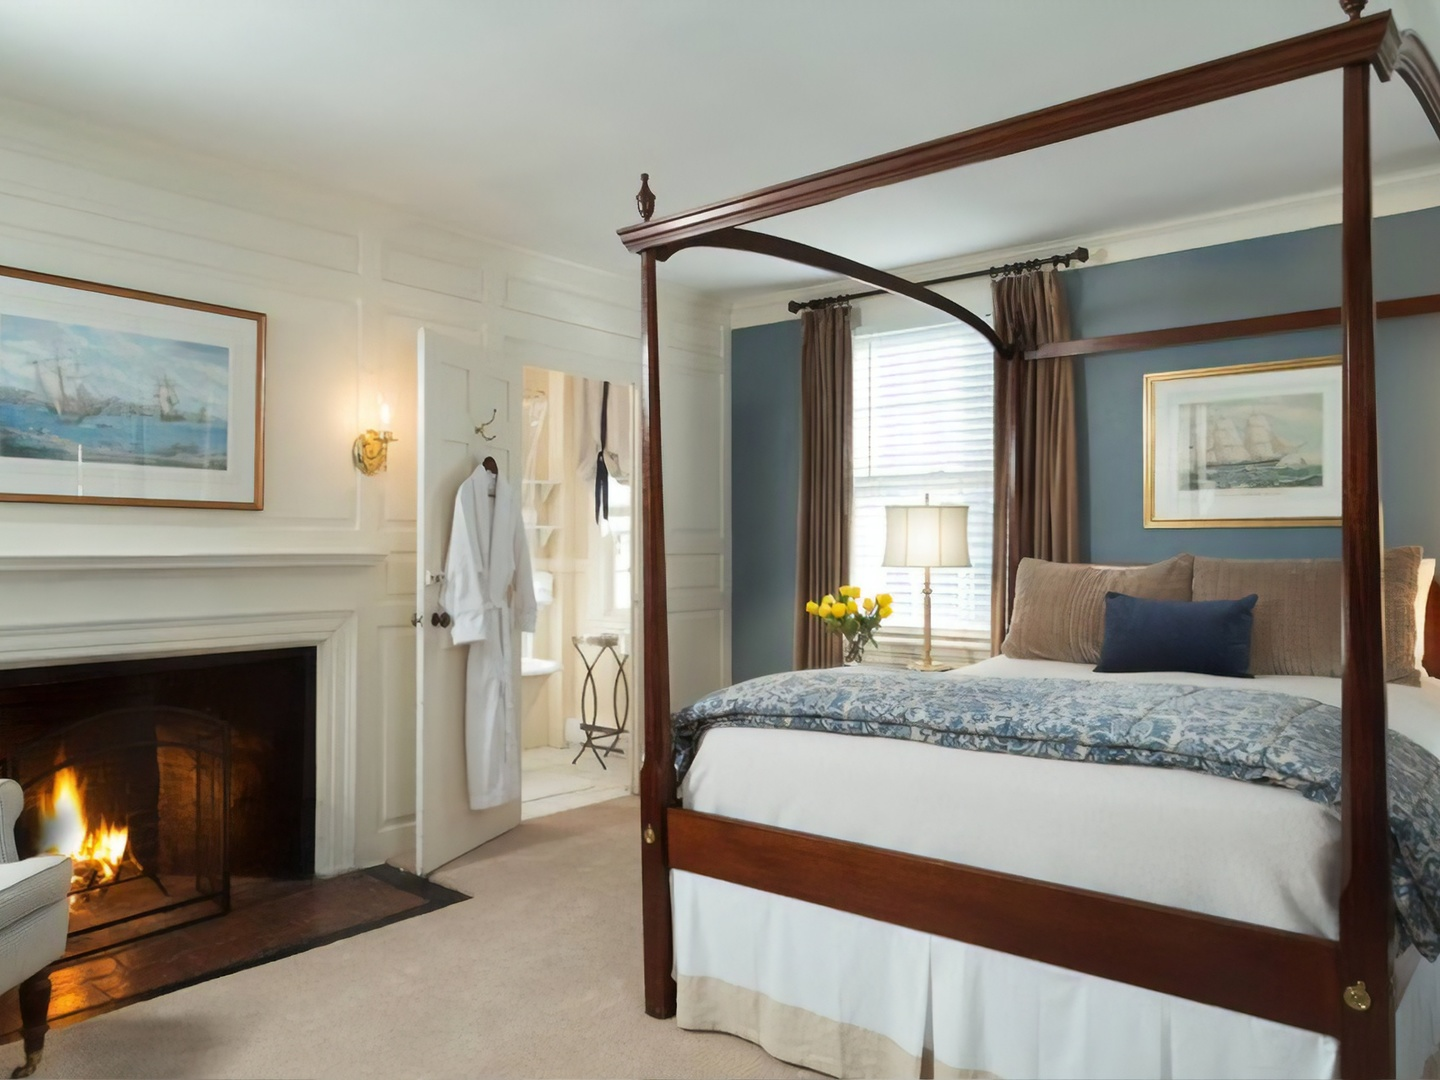 A bedroom with a bed and a fireplace at Harbor Light Inn.